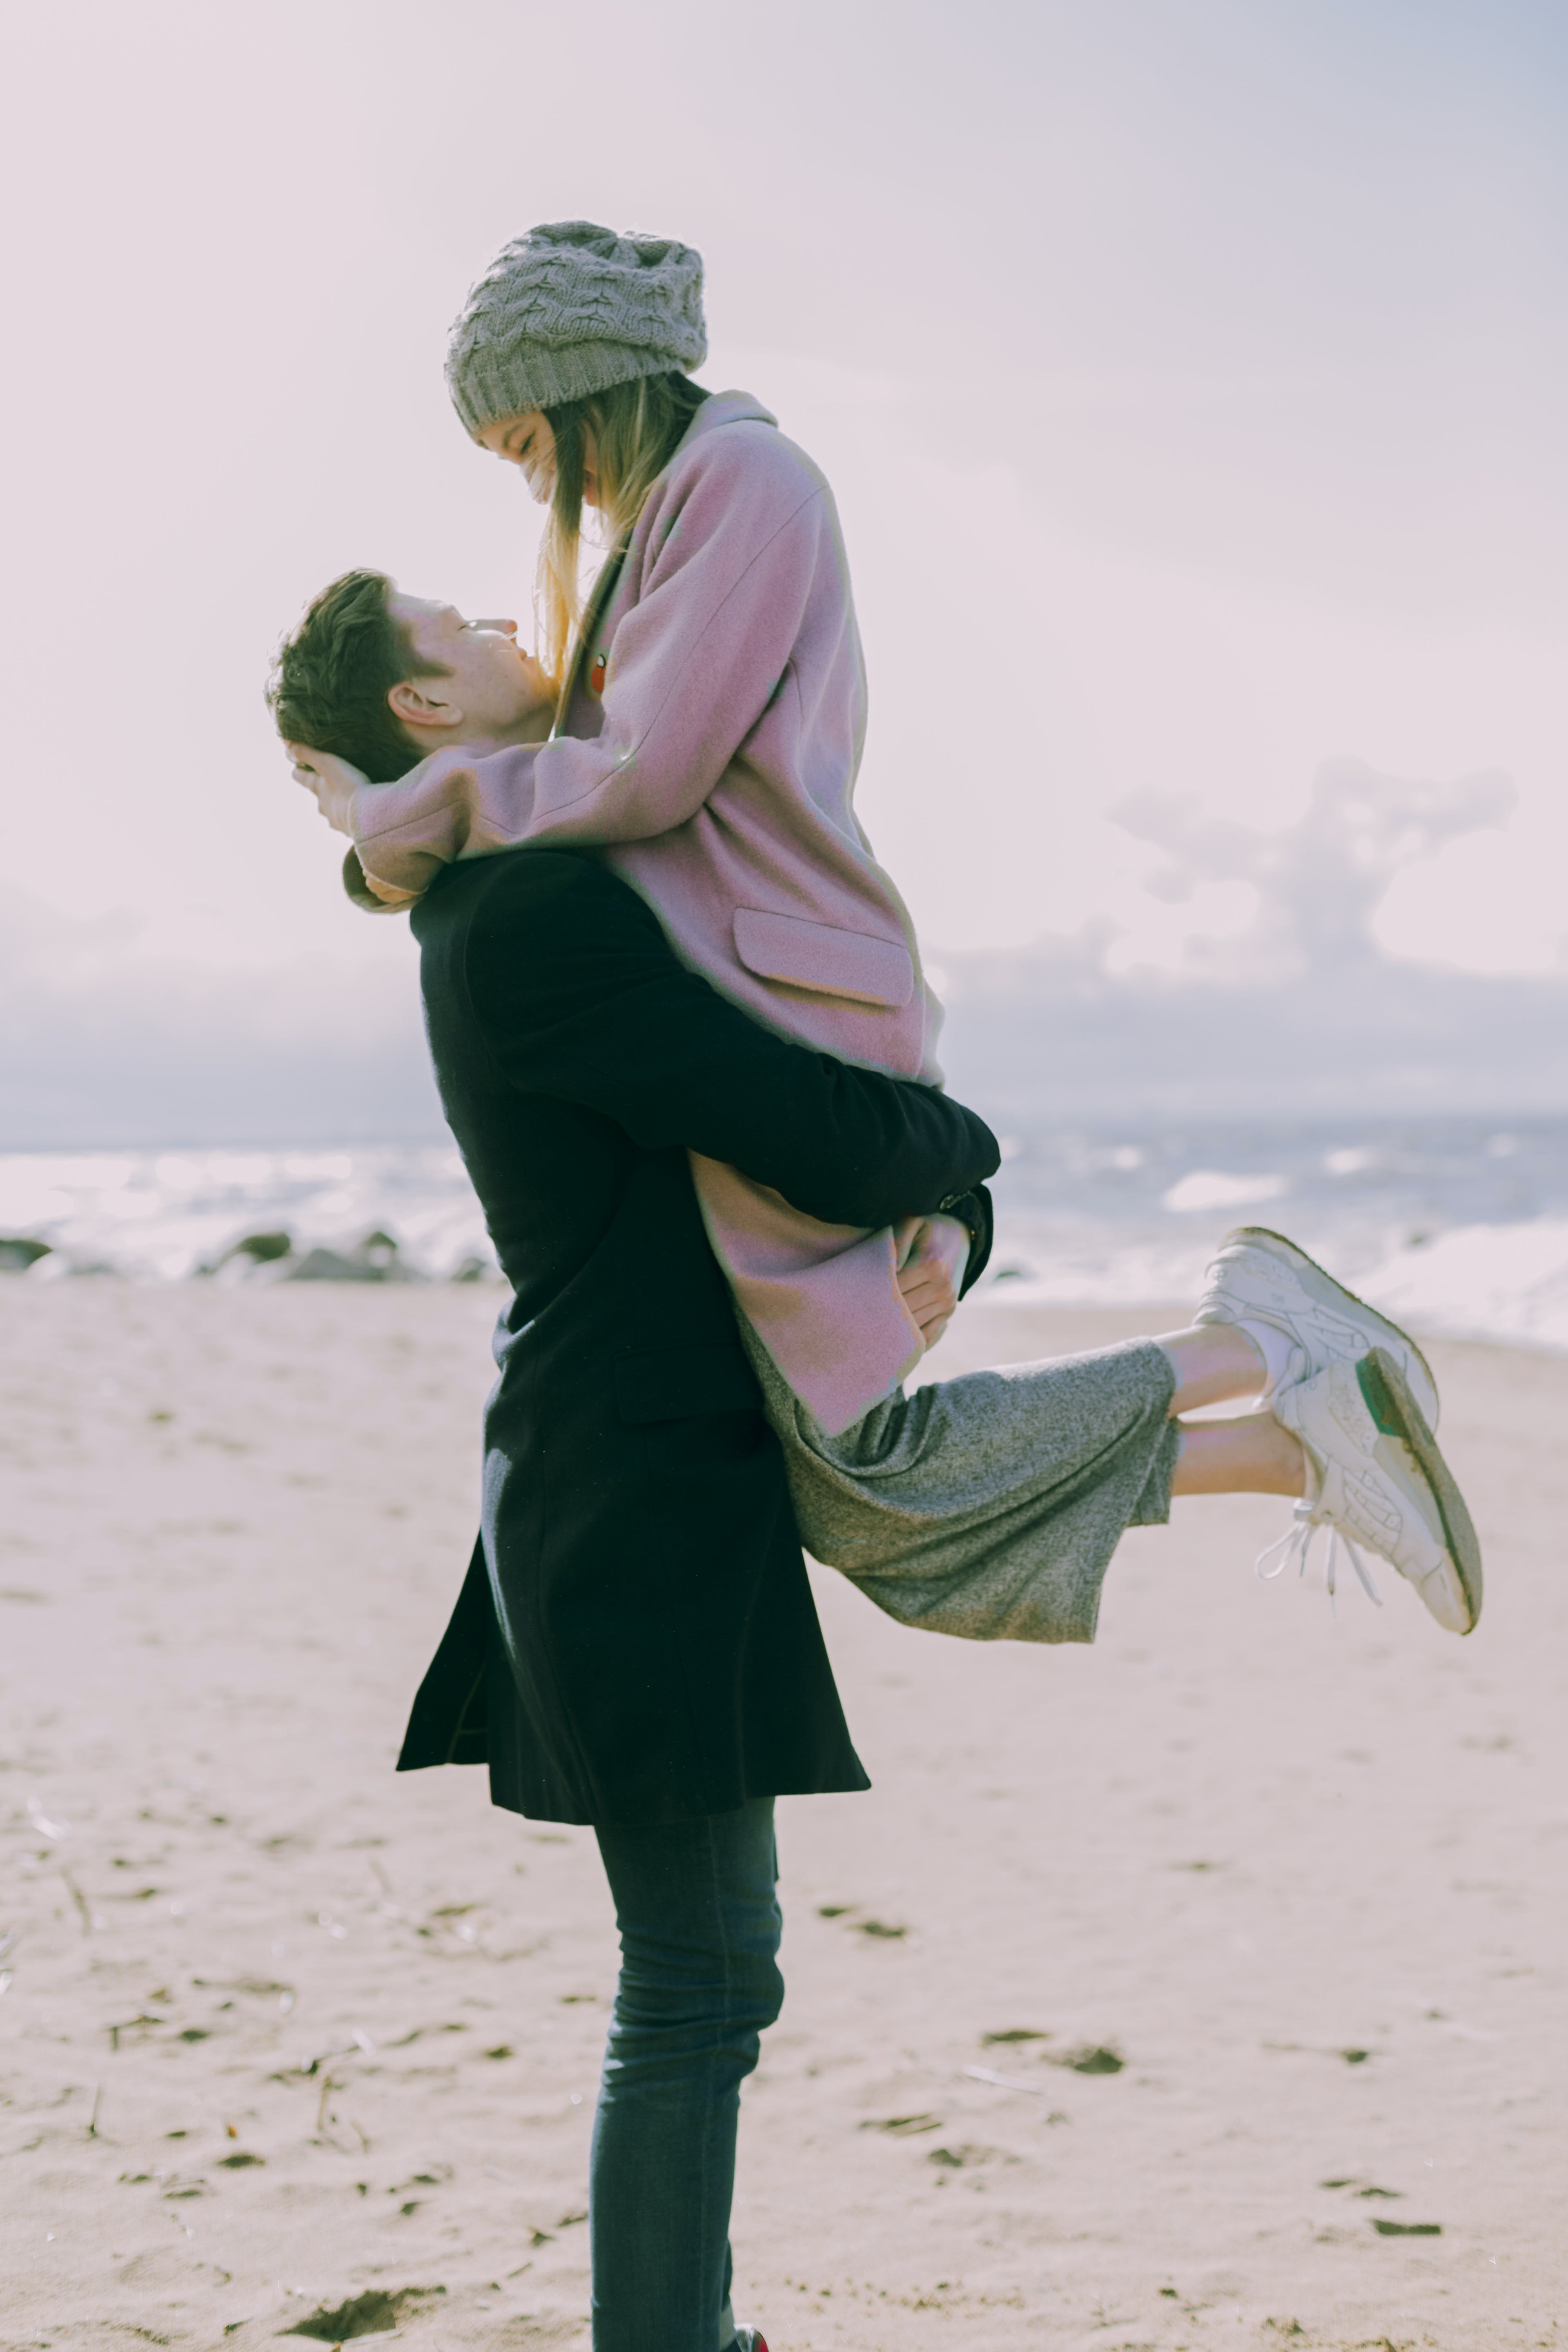 Man in Gray Coat Carrying Woman Wearing Pink Coat in Beach Near Shoreline and Body of Water